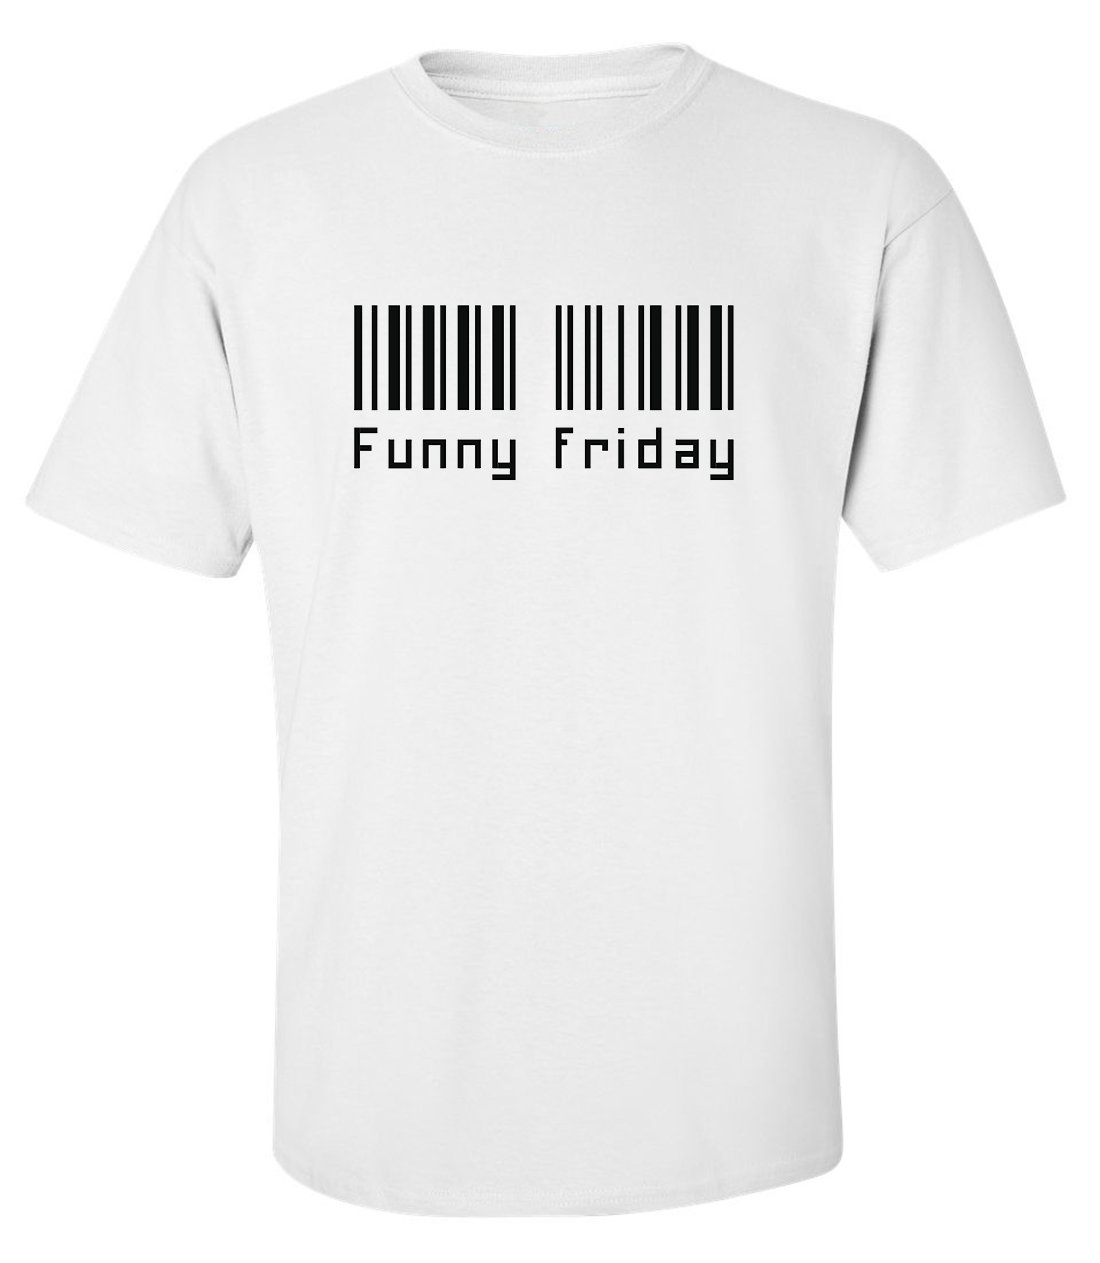 Funny friday bar code fashioned men printed white cotton t-shirt size XL